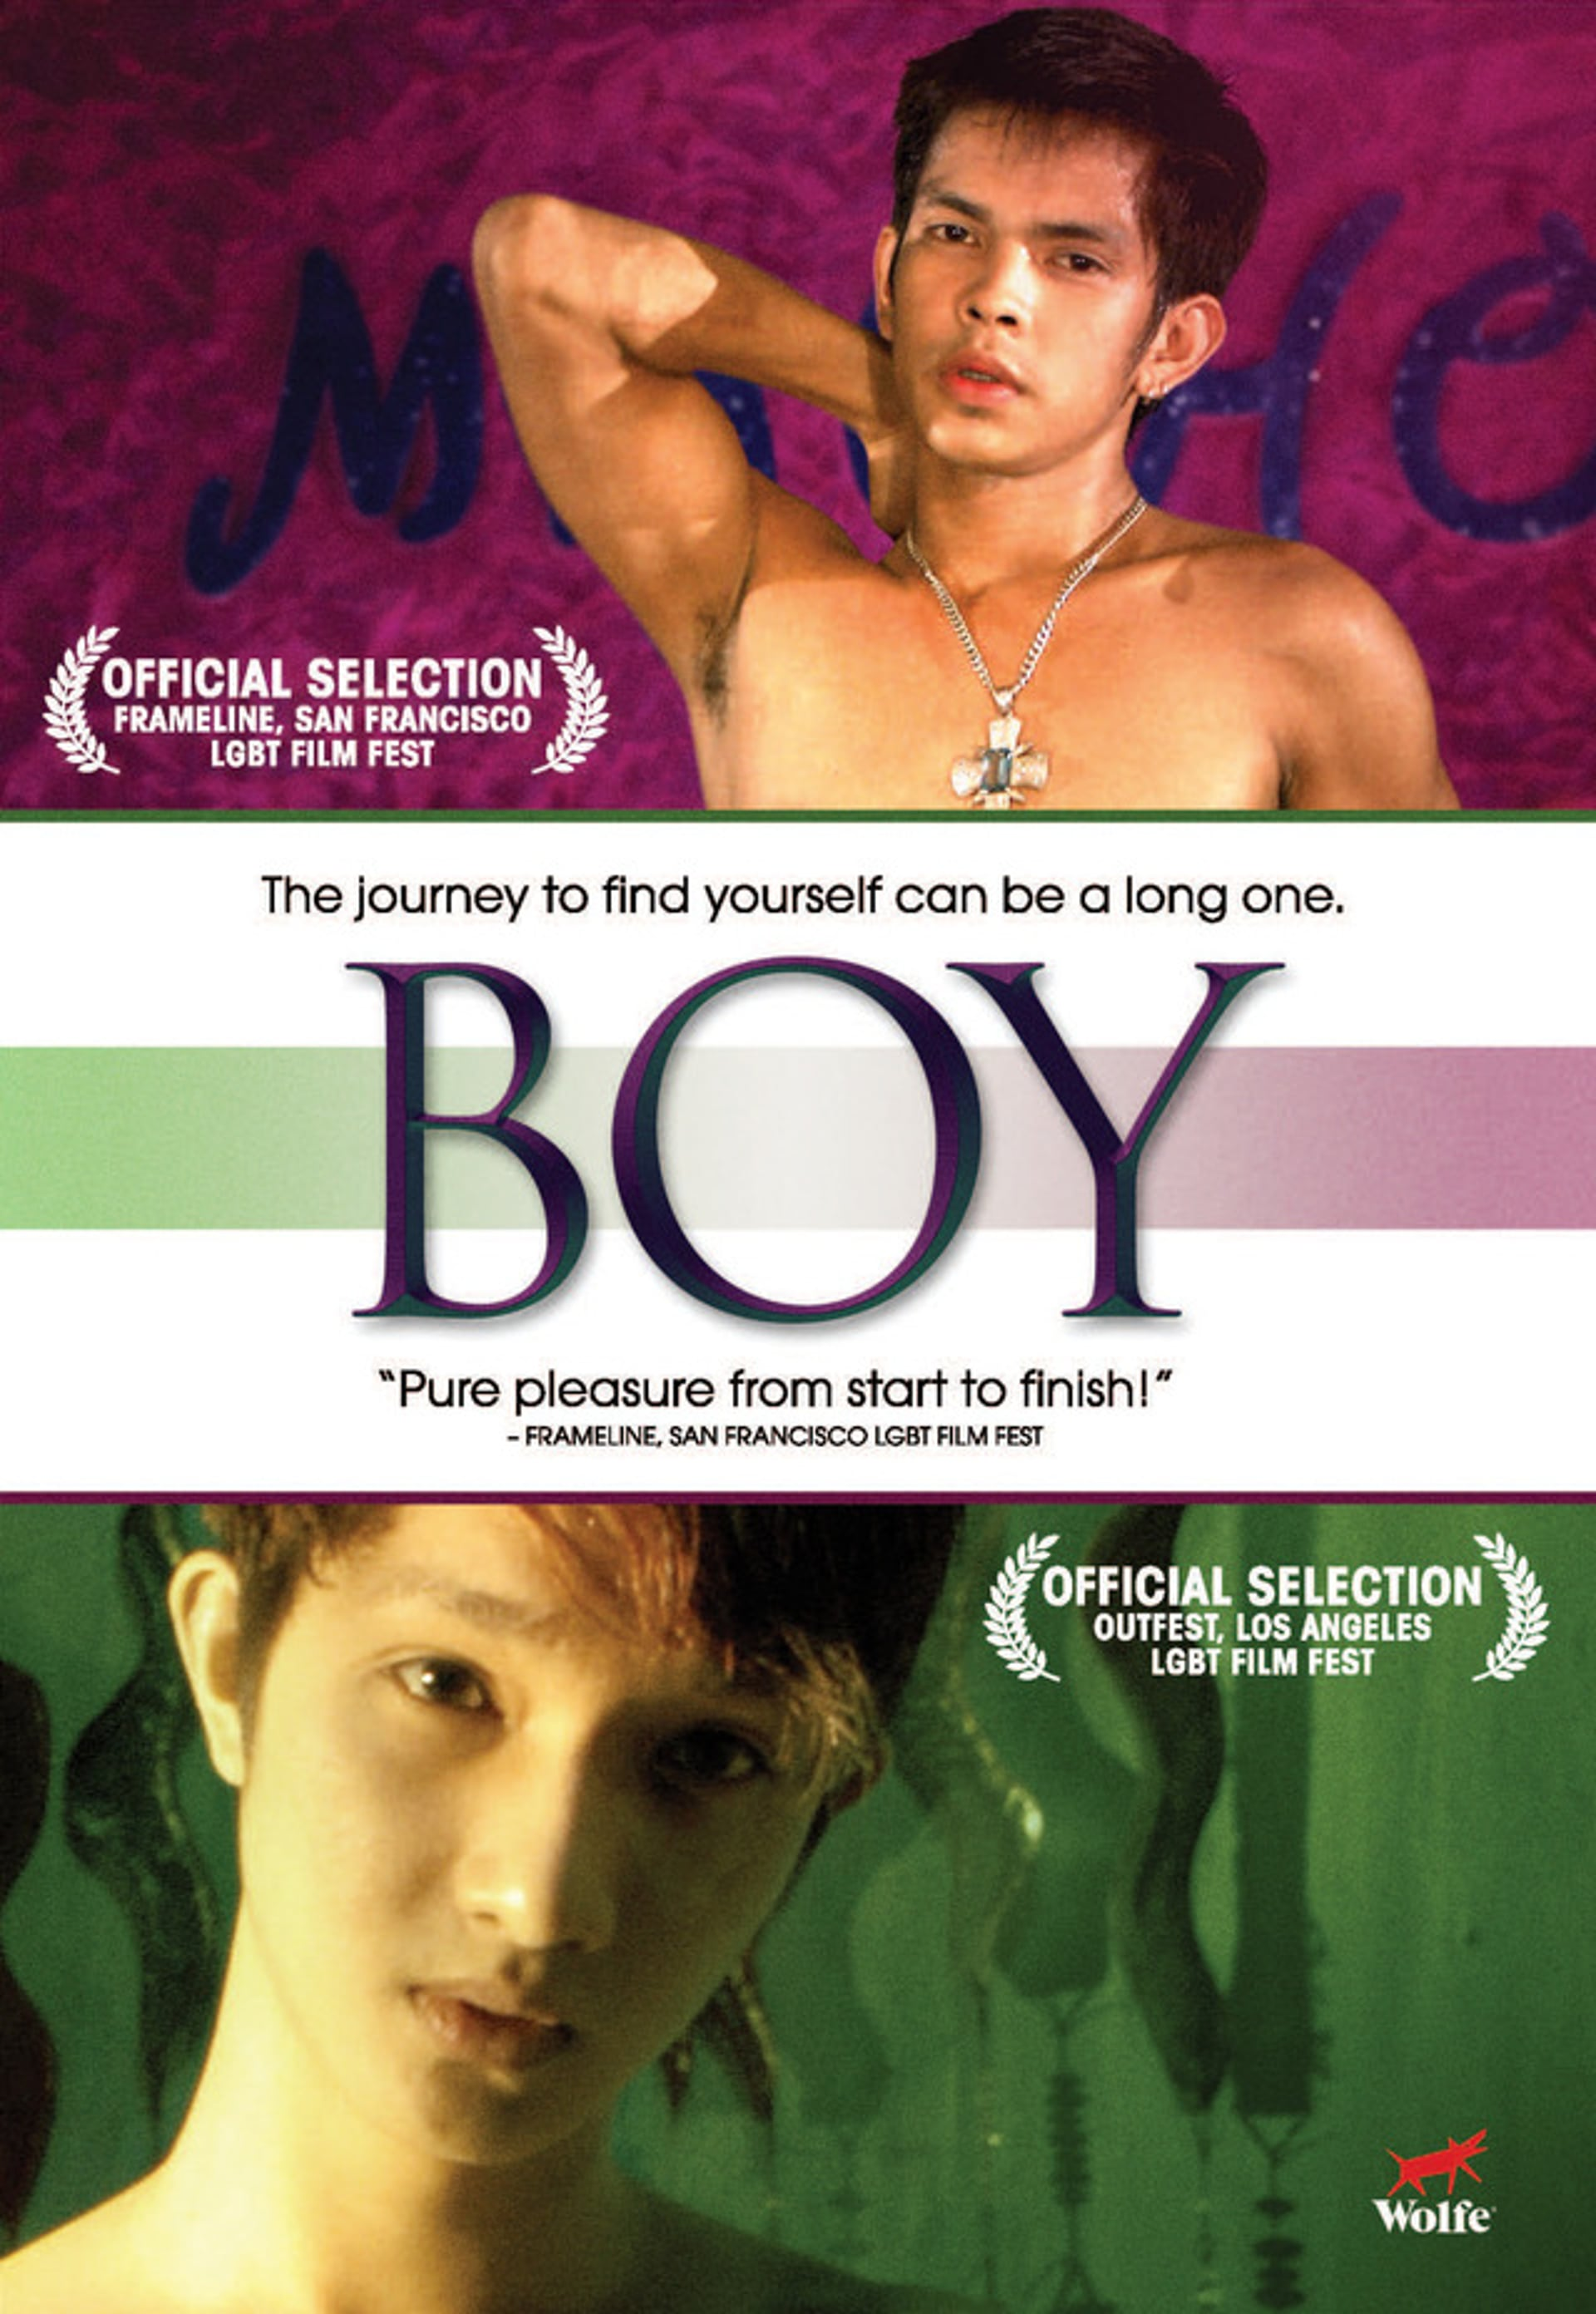 gay films on demand